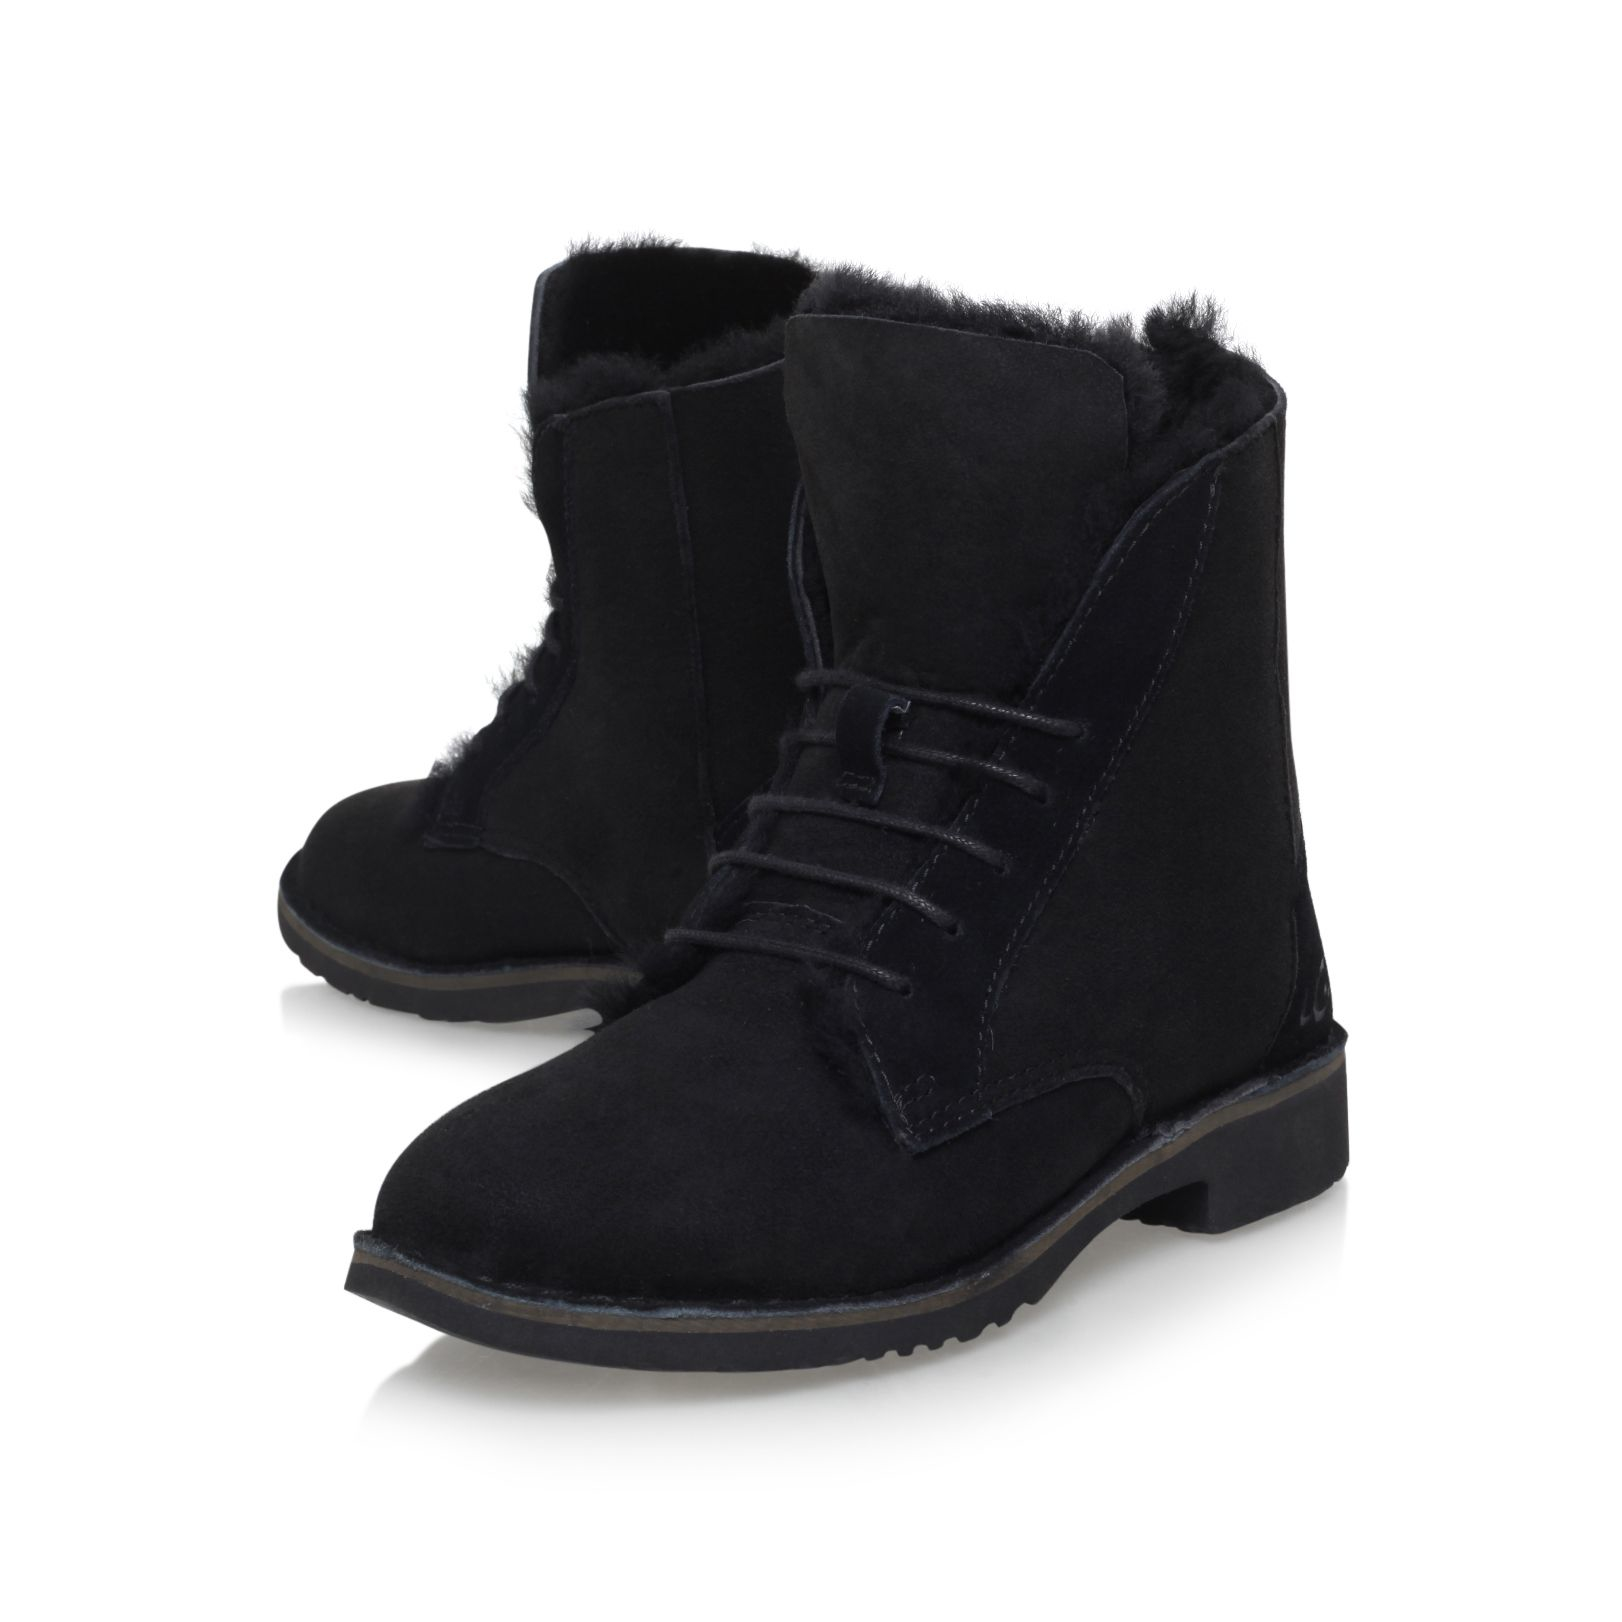 UGG Suede Quincy Flat Ankle Boots in Black